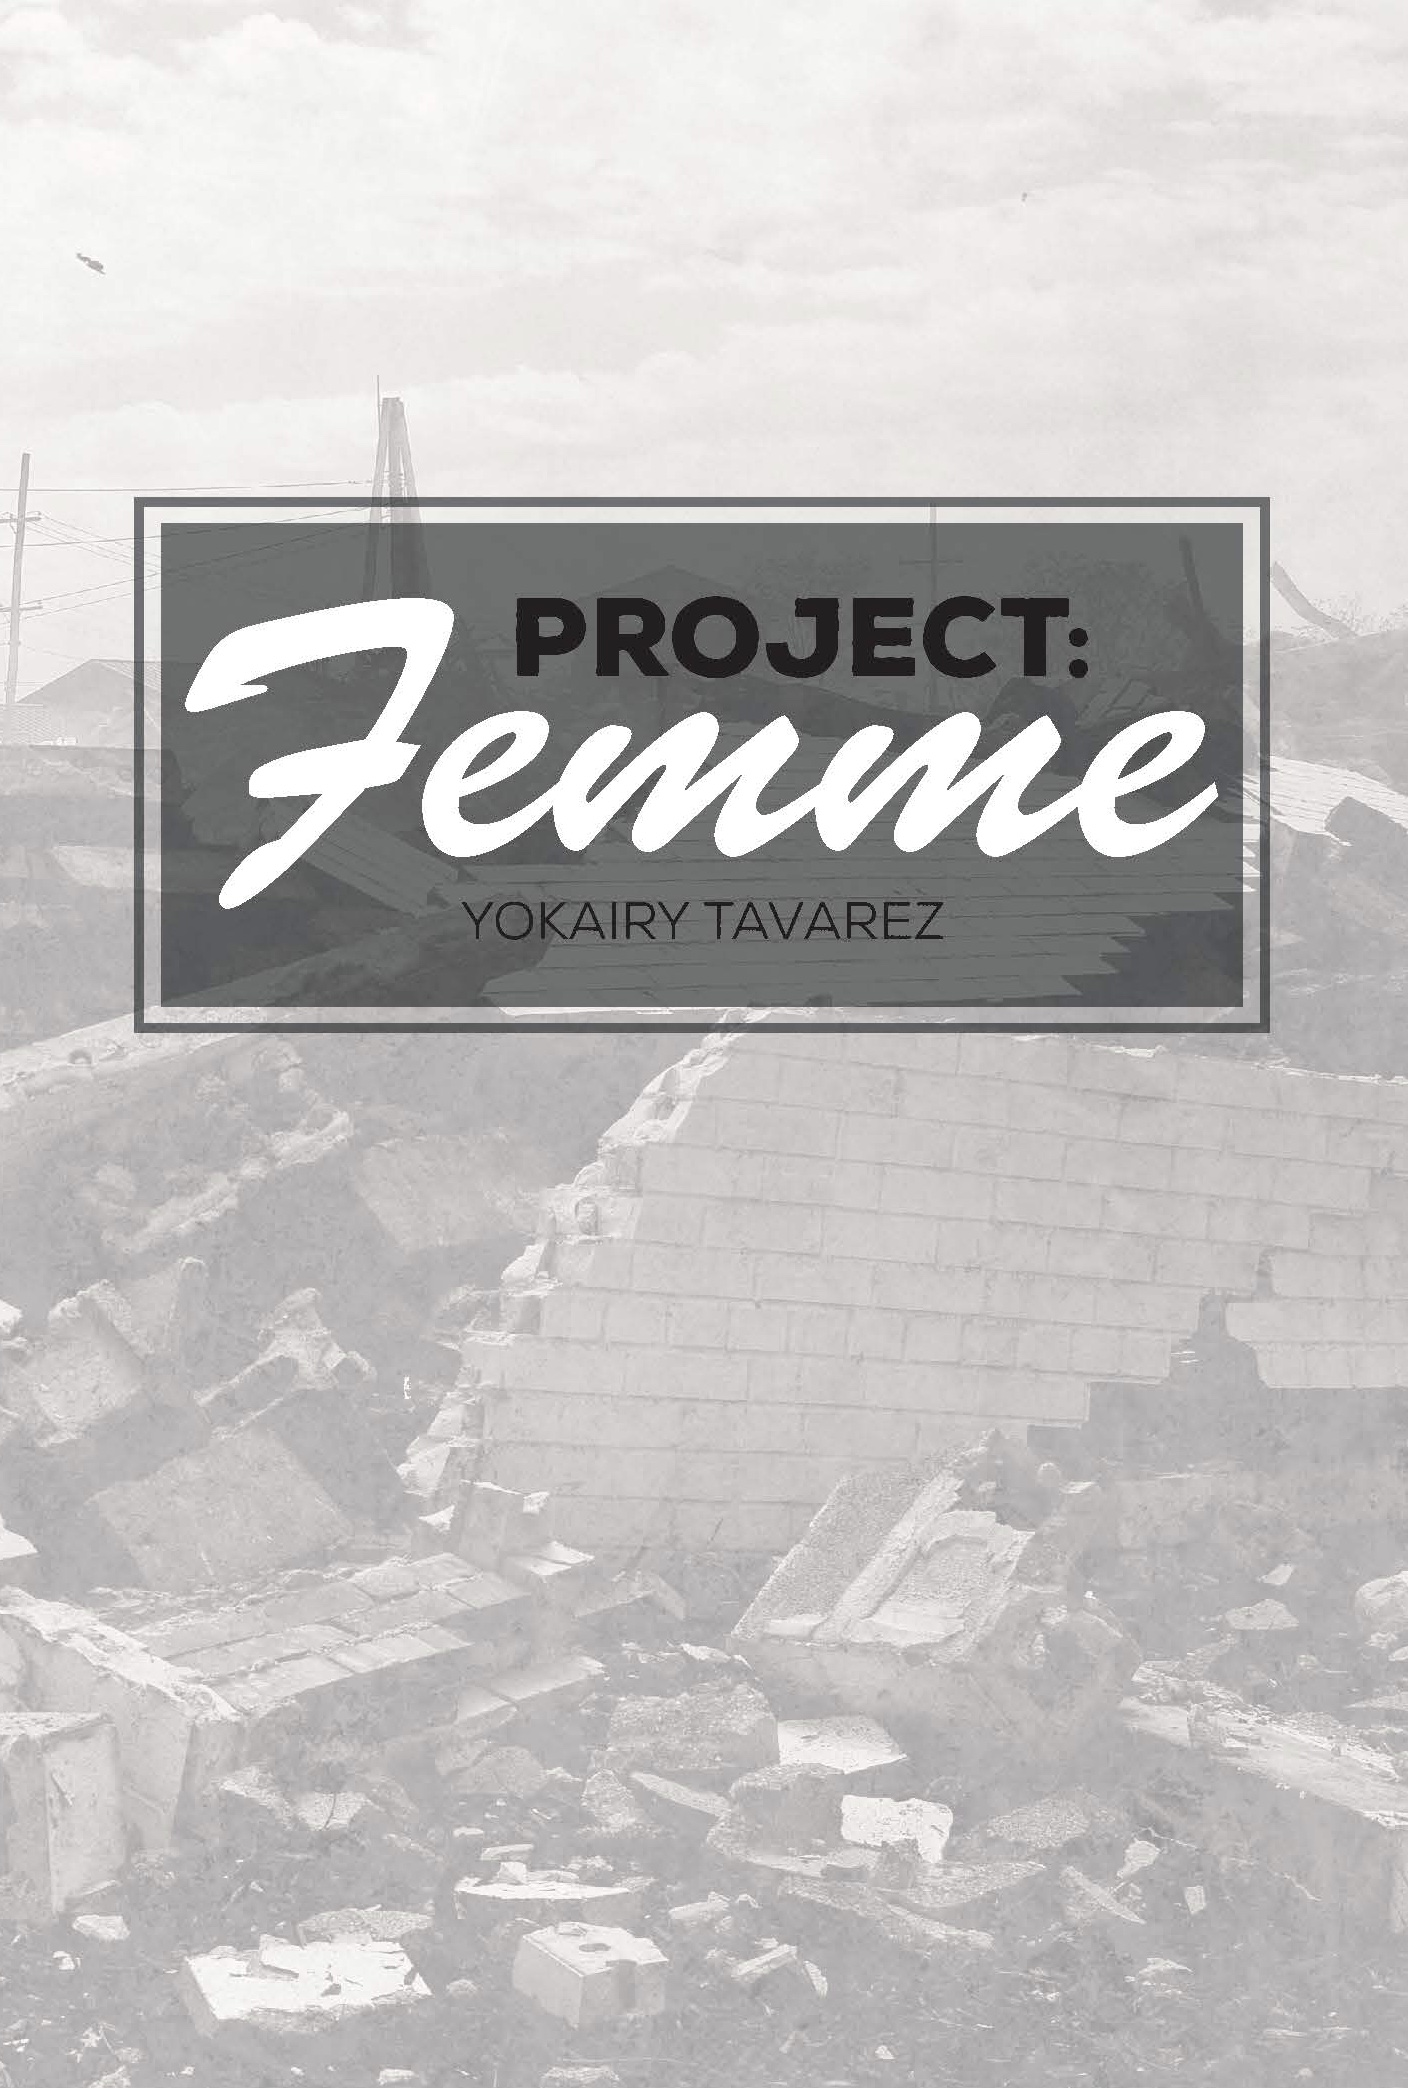 project: femme is also available online at barnes & noble - different cover, same badass heroine